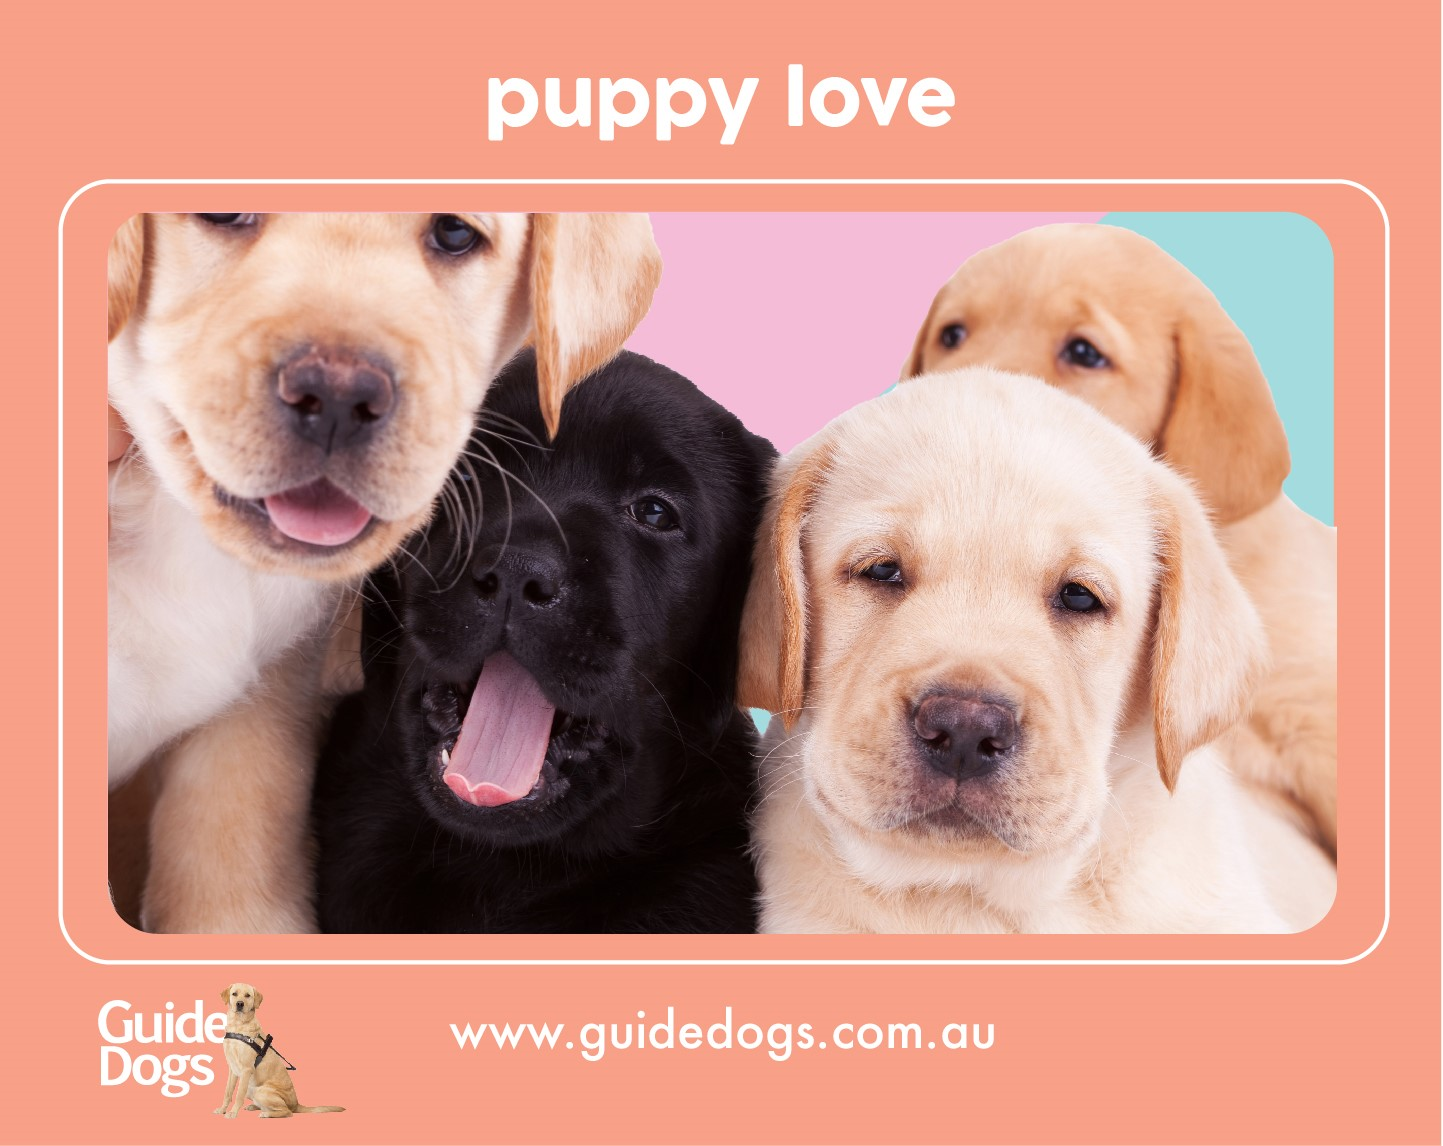 Image shows the free fridge magnet which you'll receive when you request your Gift in Will guide - magnet contains a photo of 4 puppies and has the url of the main Guide Dogs website at the bottom www.guidedogs.com.au